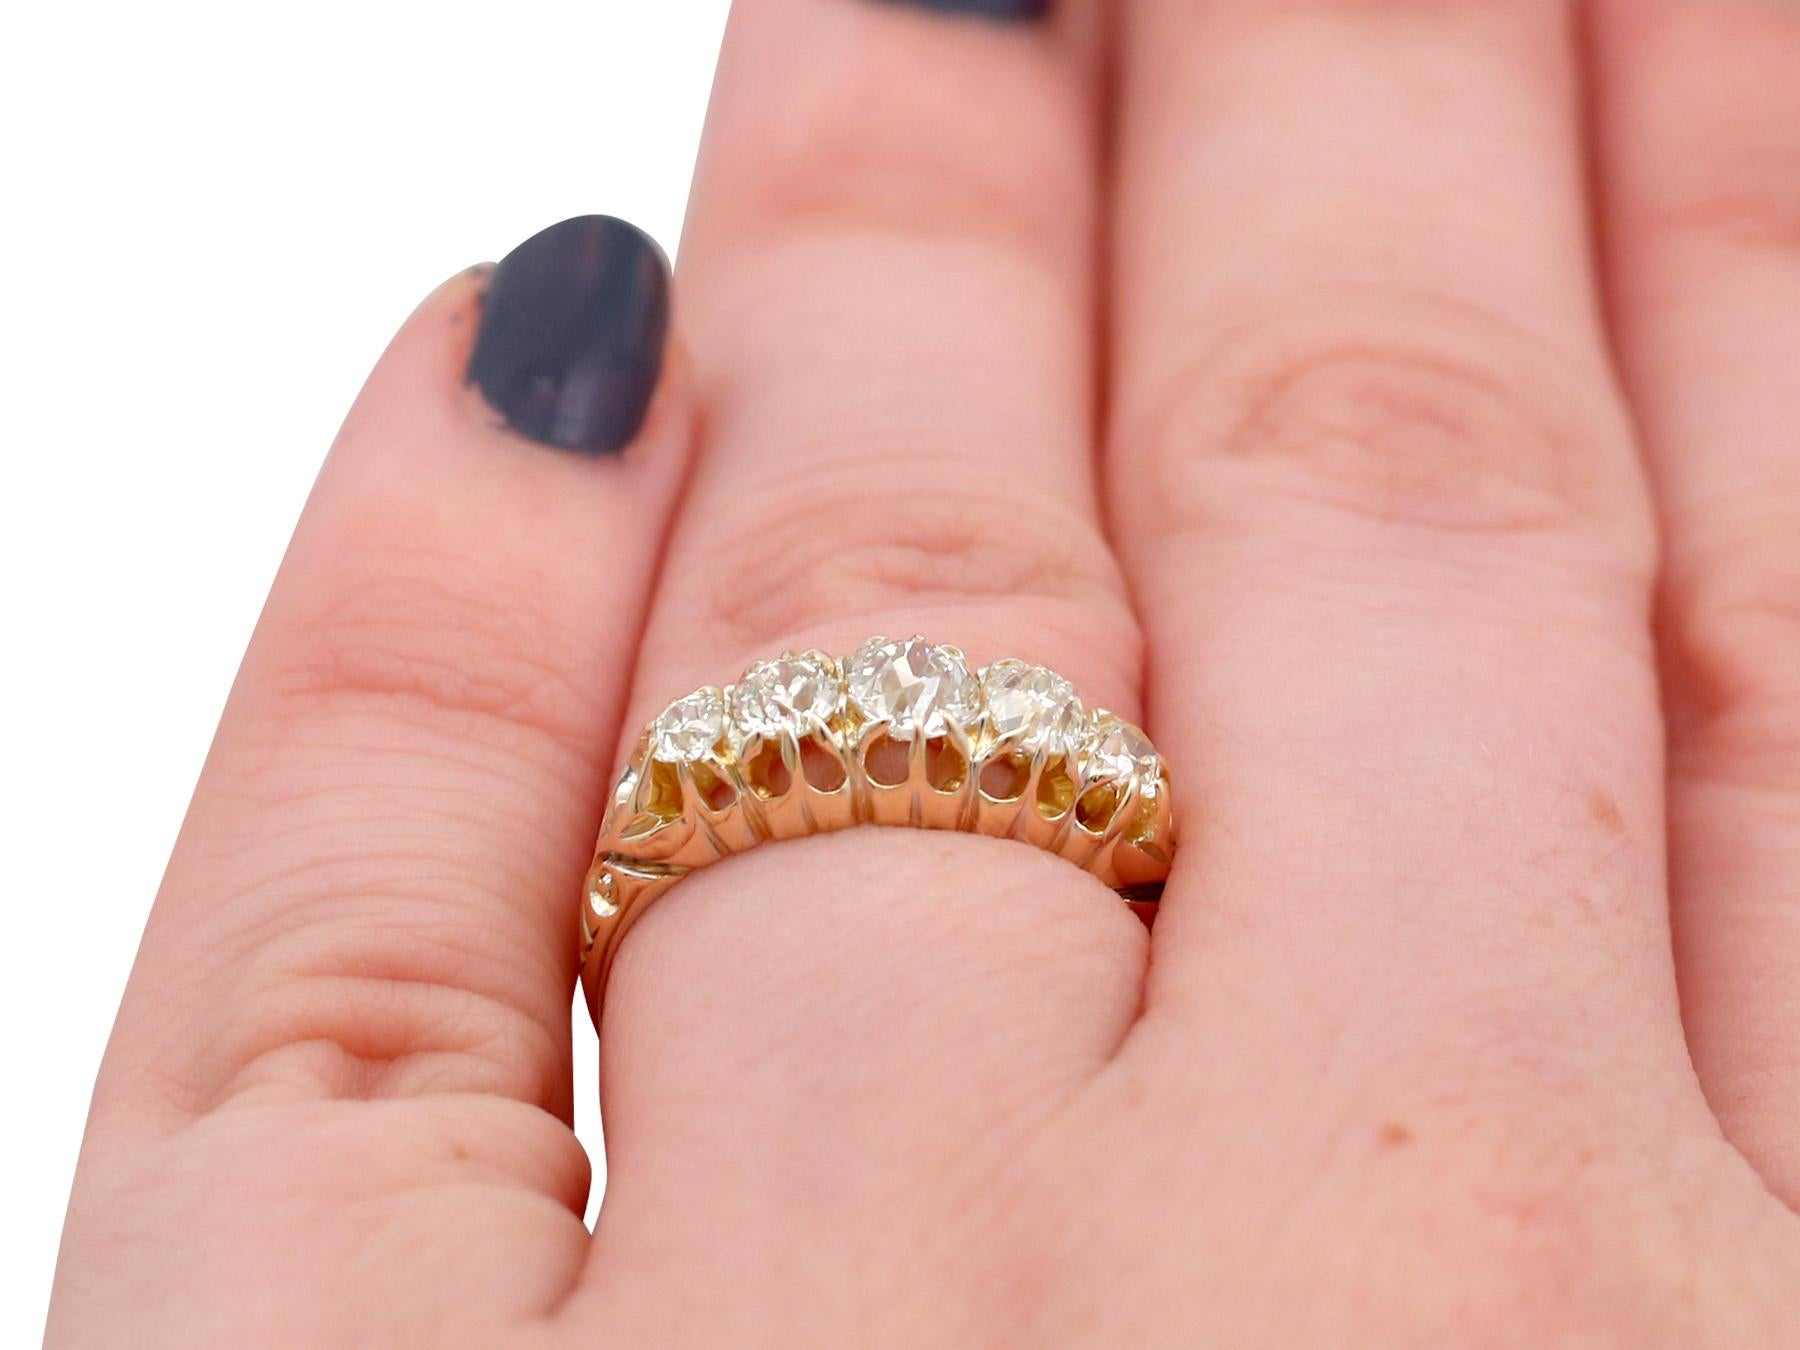 Victorian 1.36 Carat Diamond Gold Five-Stone Ring For Sale at 1stdibs